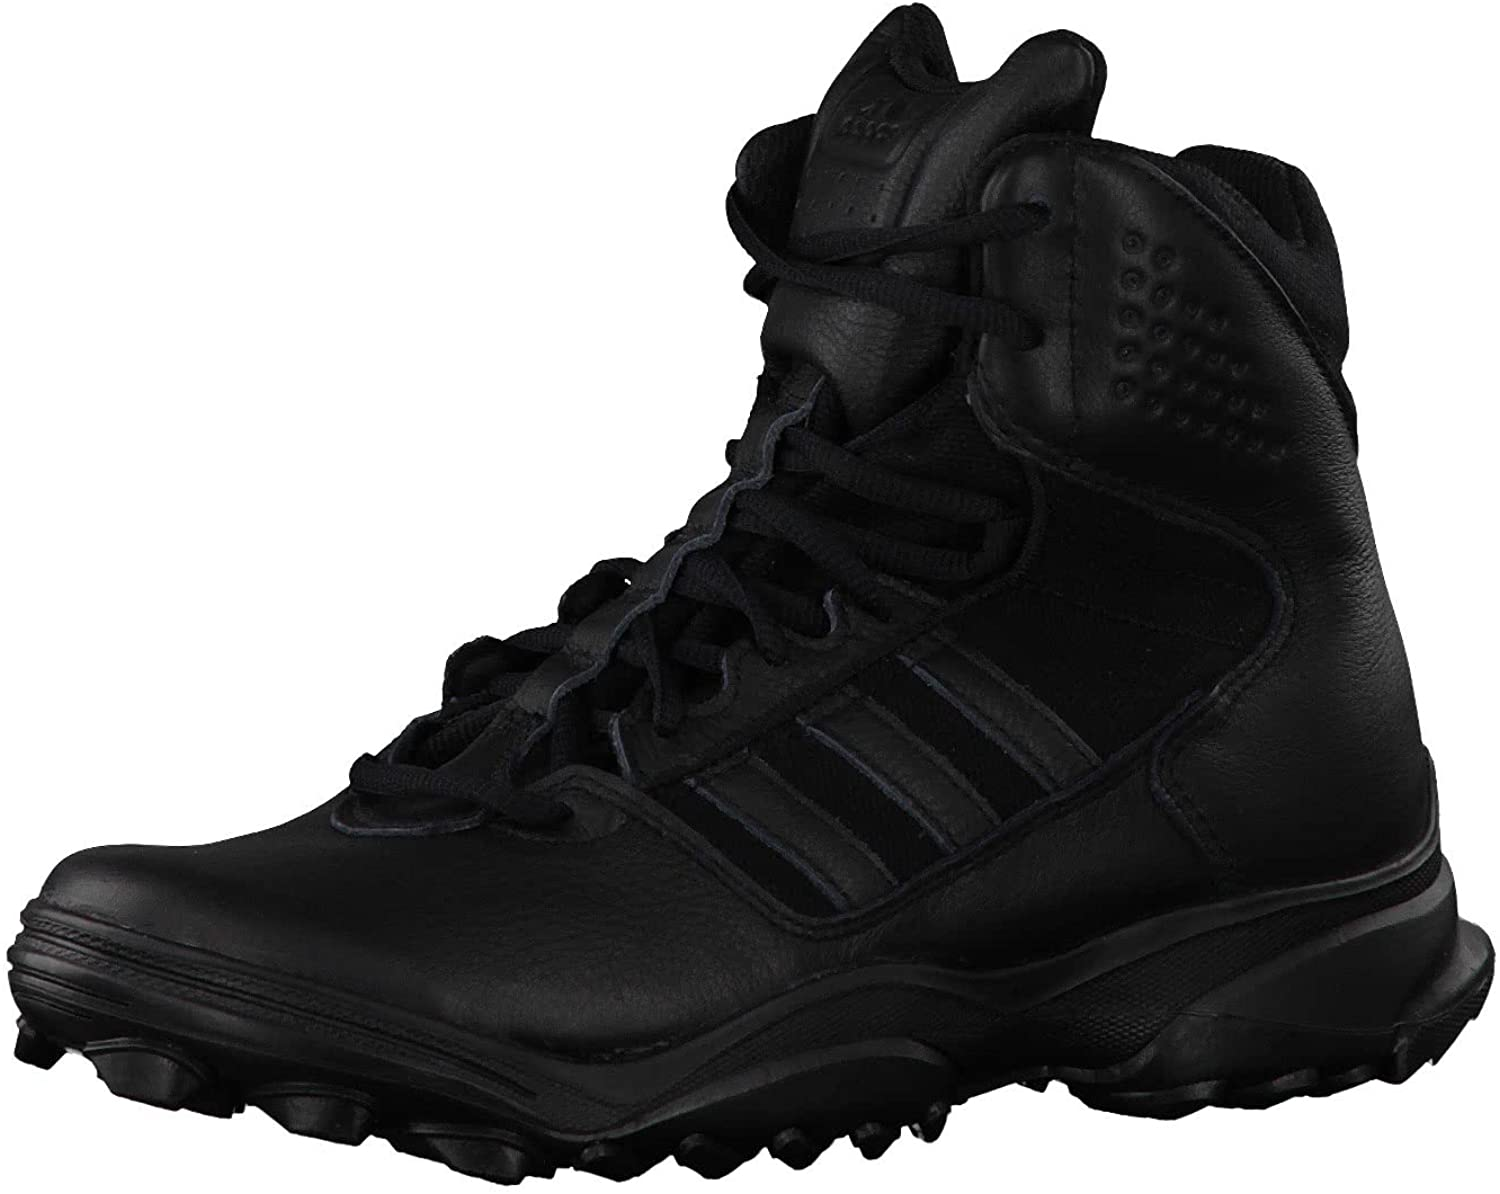 Percentuale animale veloce chaussure adidas tactique indice ...